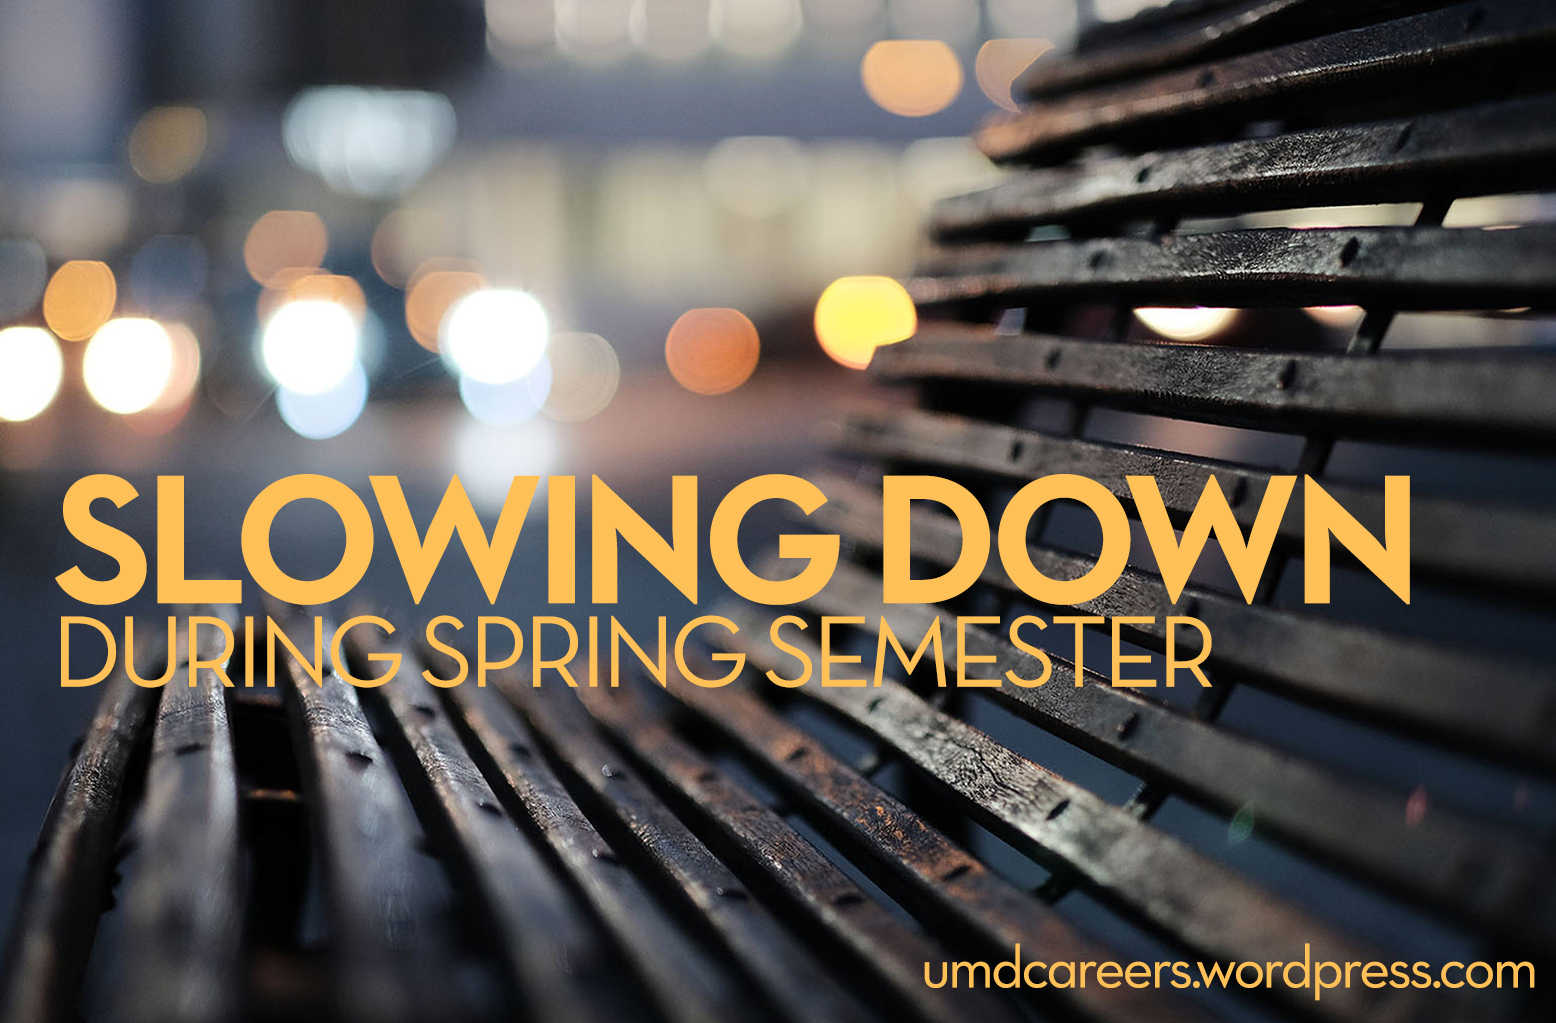 Slowing down during spring semester